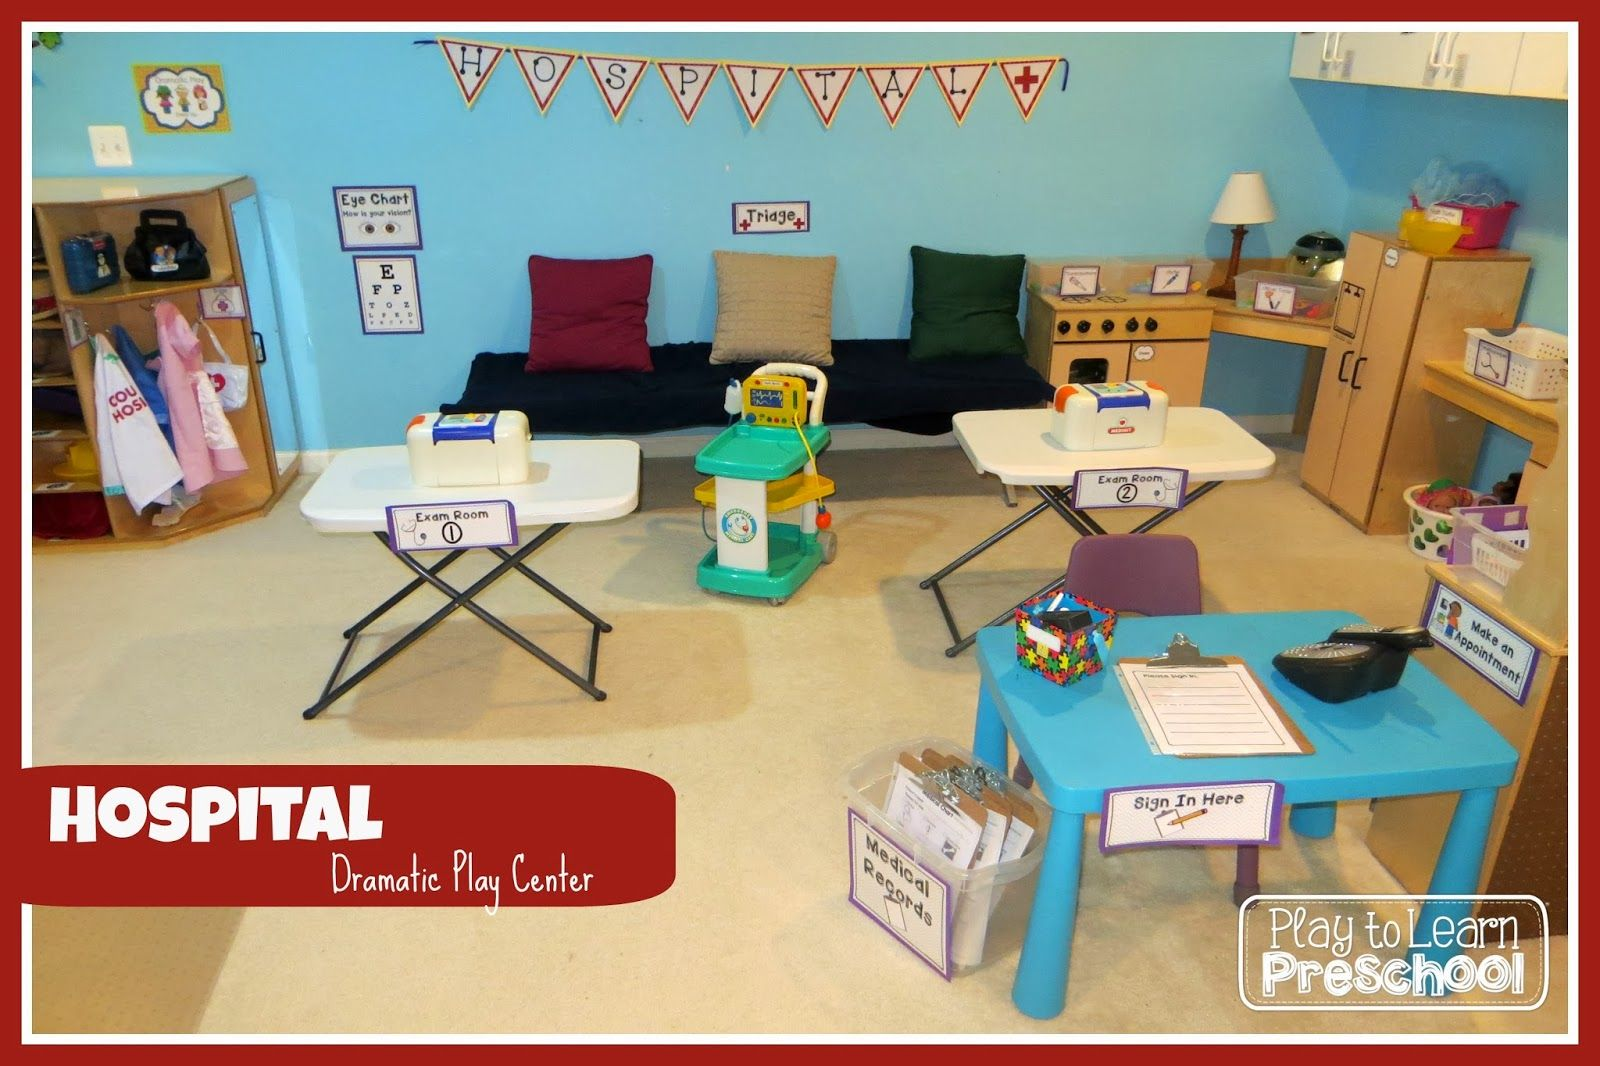 Hospital - Doctor's Office Dramatic Play center at Play to ...